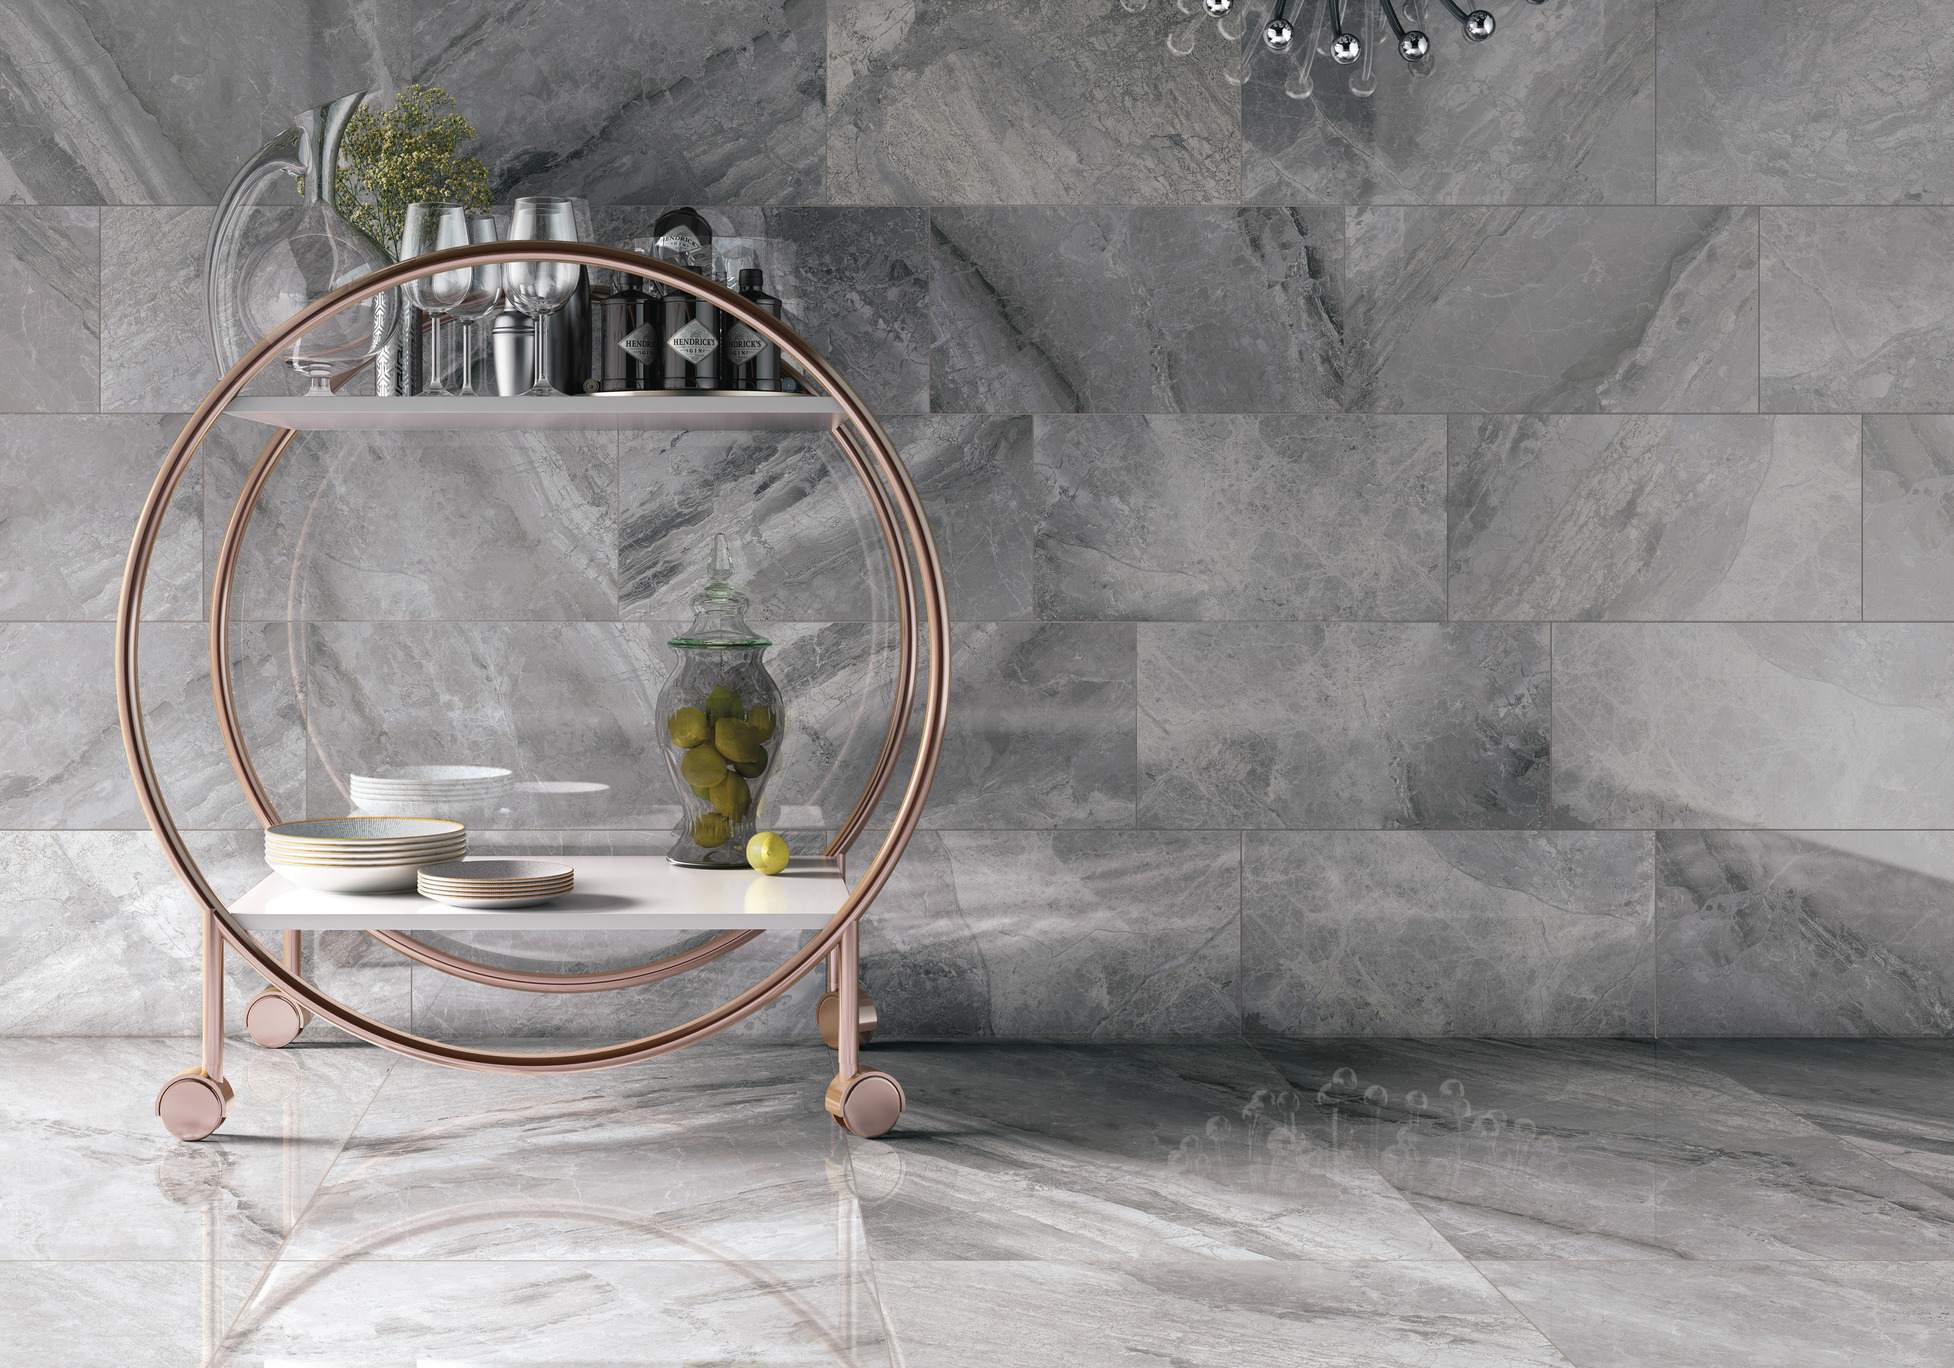 Shop Limestone Tiles In Our Local Tile Store